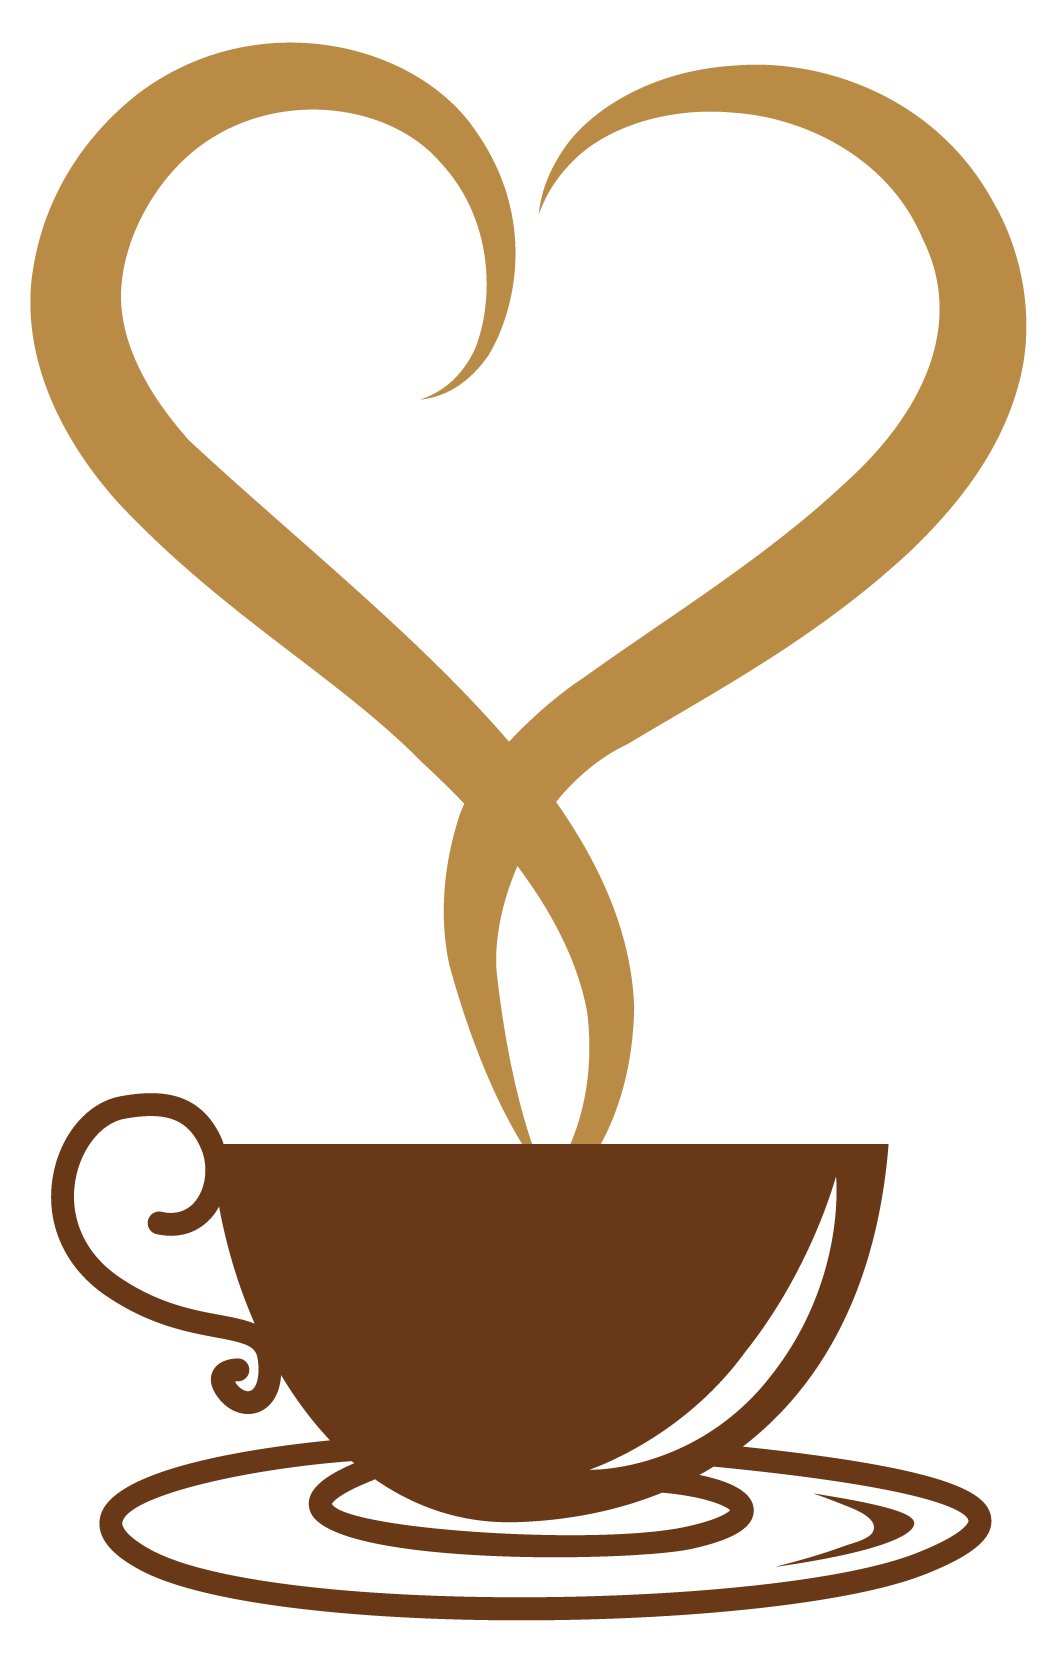 Coffee Mug With Heart PNG Transparent Coffee Mug With Heart.